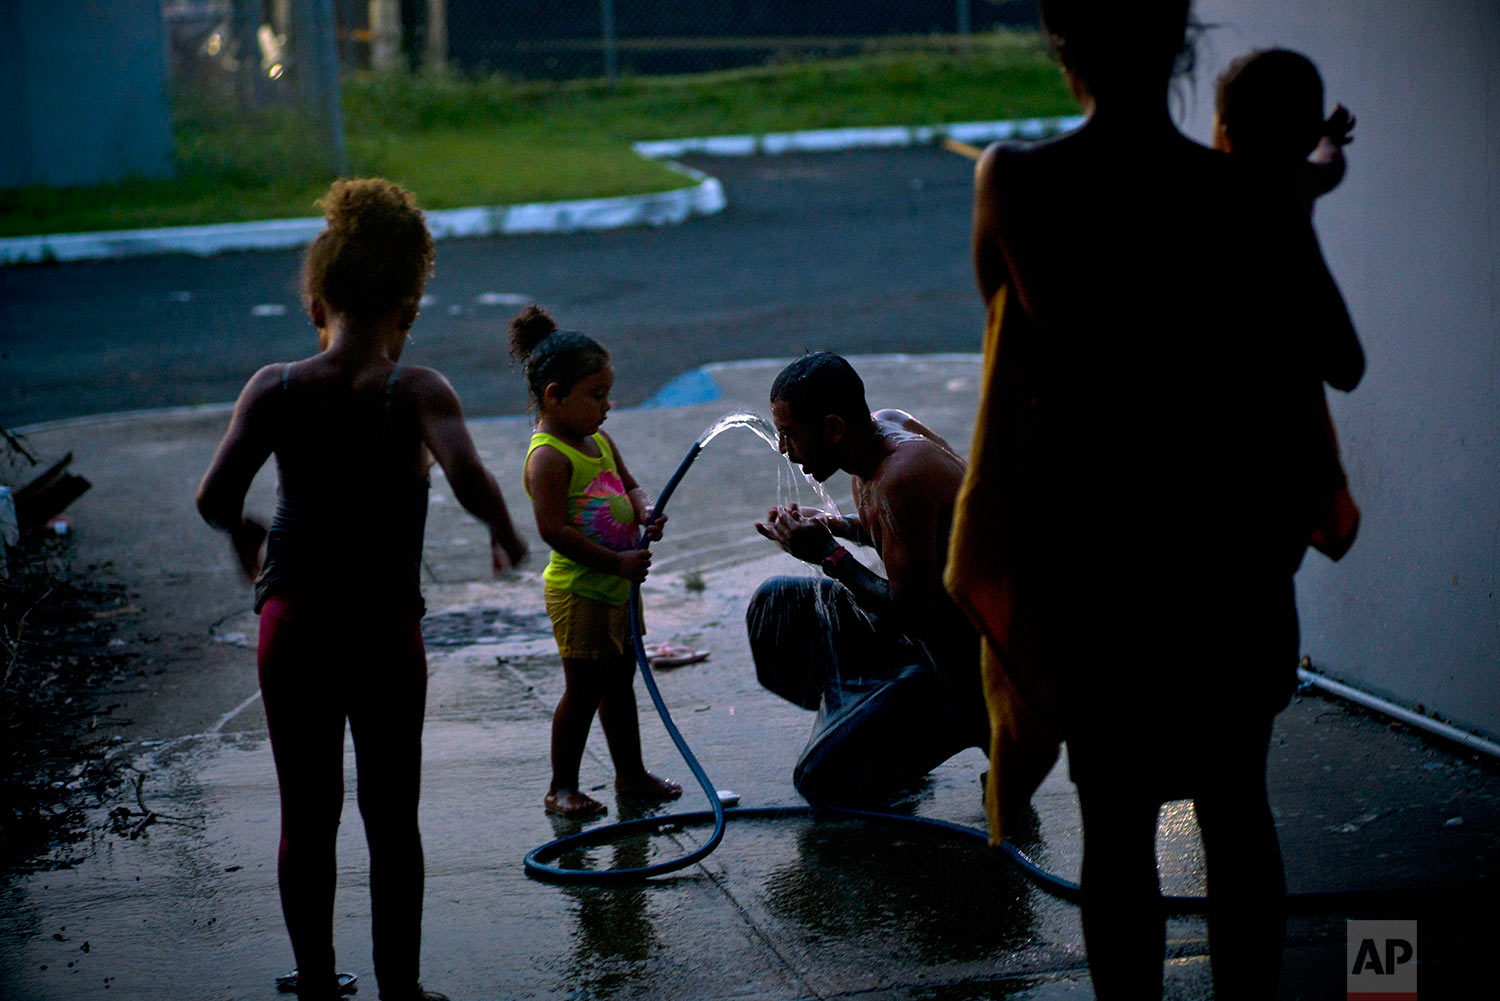 In this Thursday, Oct. 12, 2017 photo, Ander Dragoni showers with the help of his daughter holding the water hose, as they live at a school serving as a shelter for families left homeless by Hurricane Maria in Toa Baja, Puerto Rico.  (AP Photo/Ramon Espinosa)